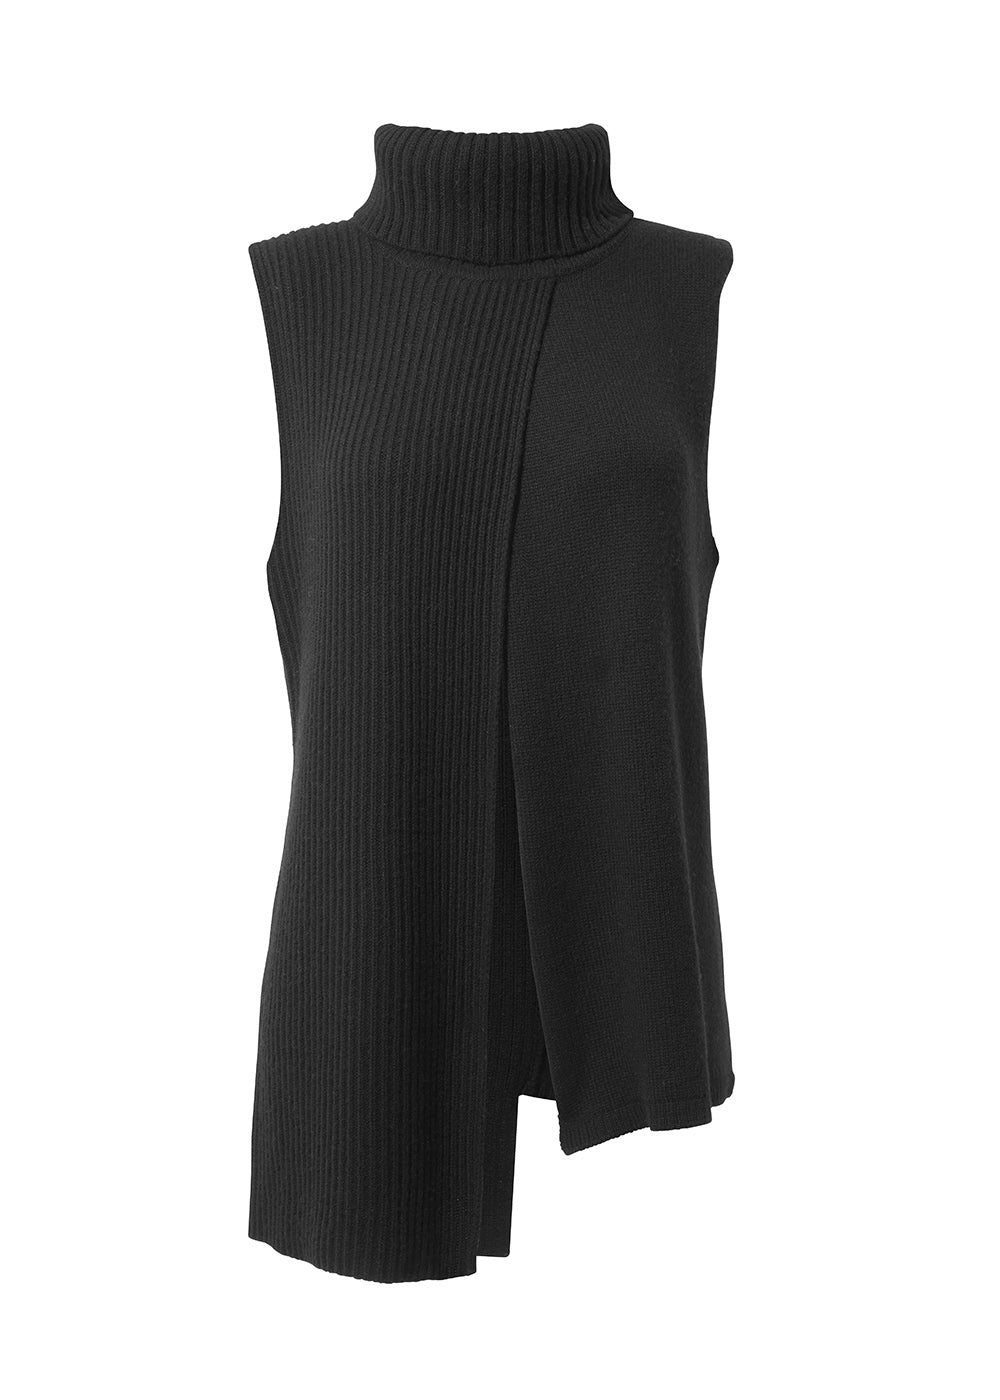 Utah Turtleneck Ribbed Vest